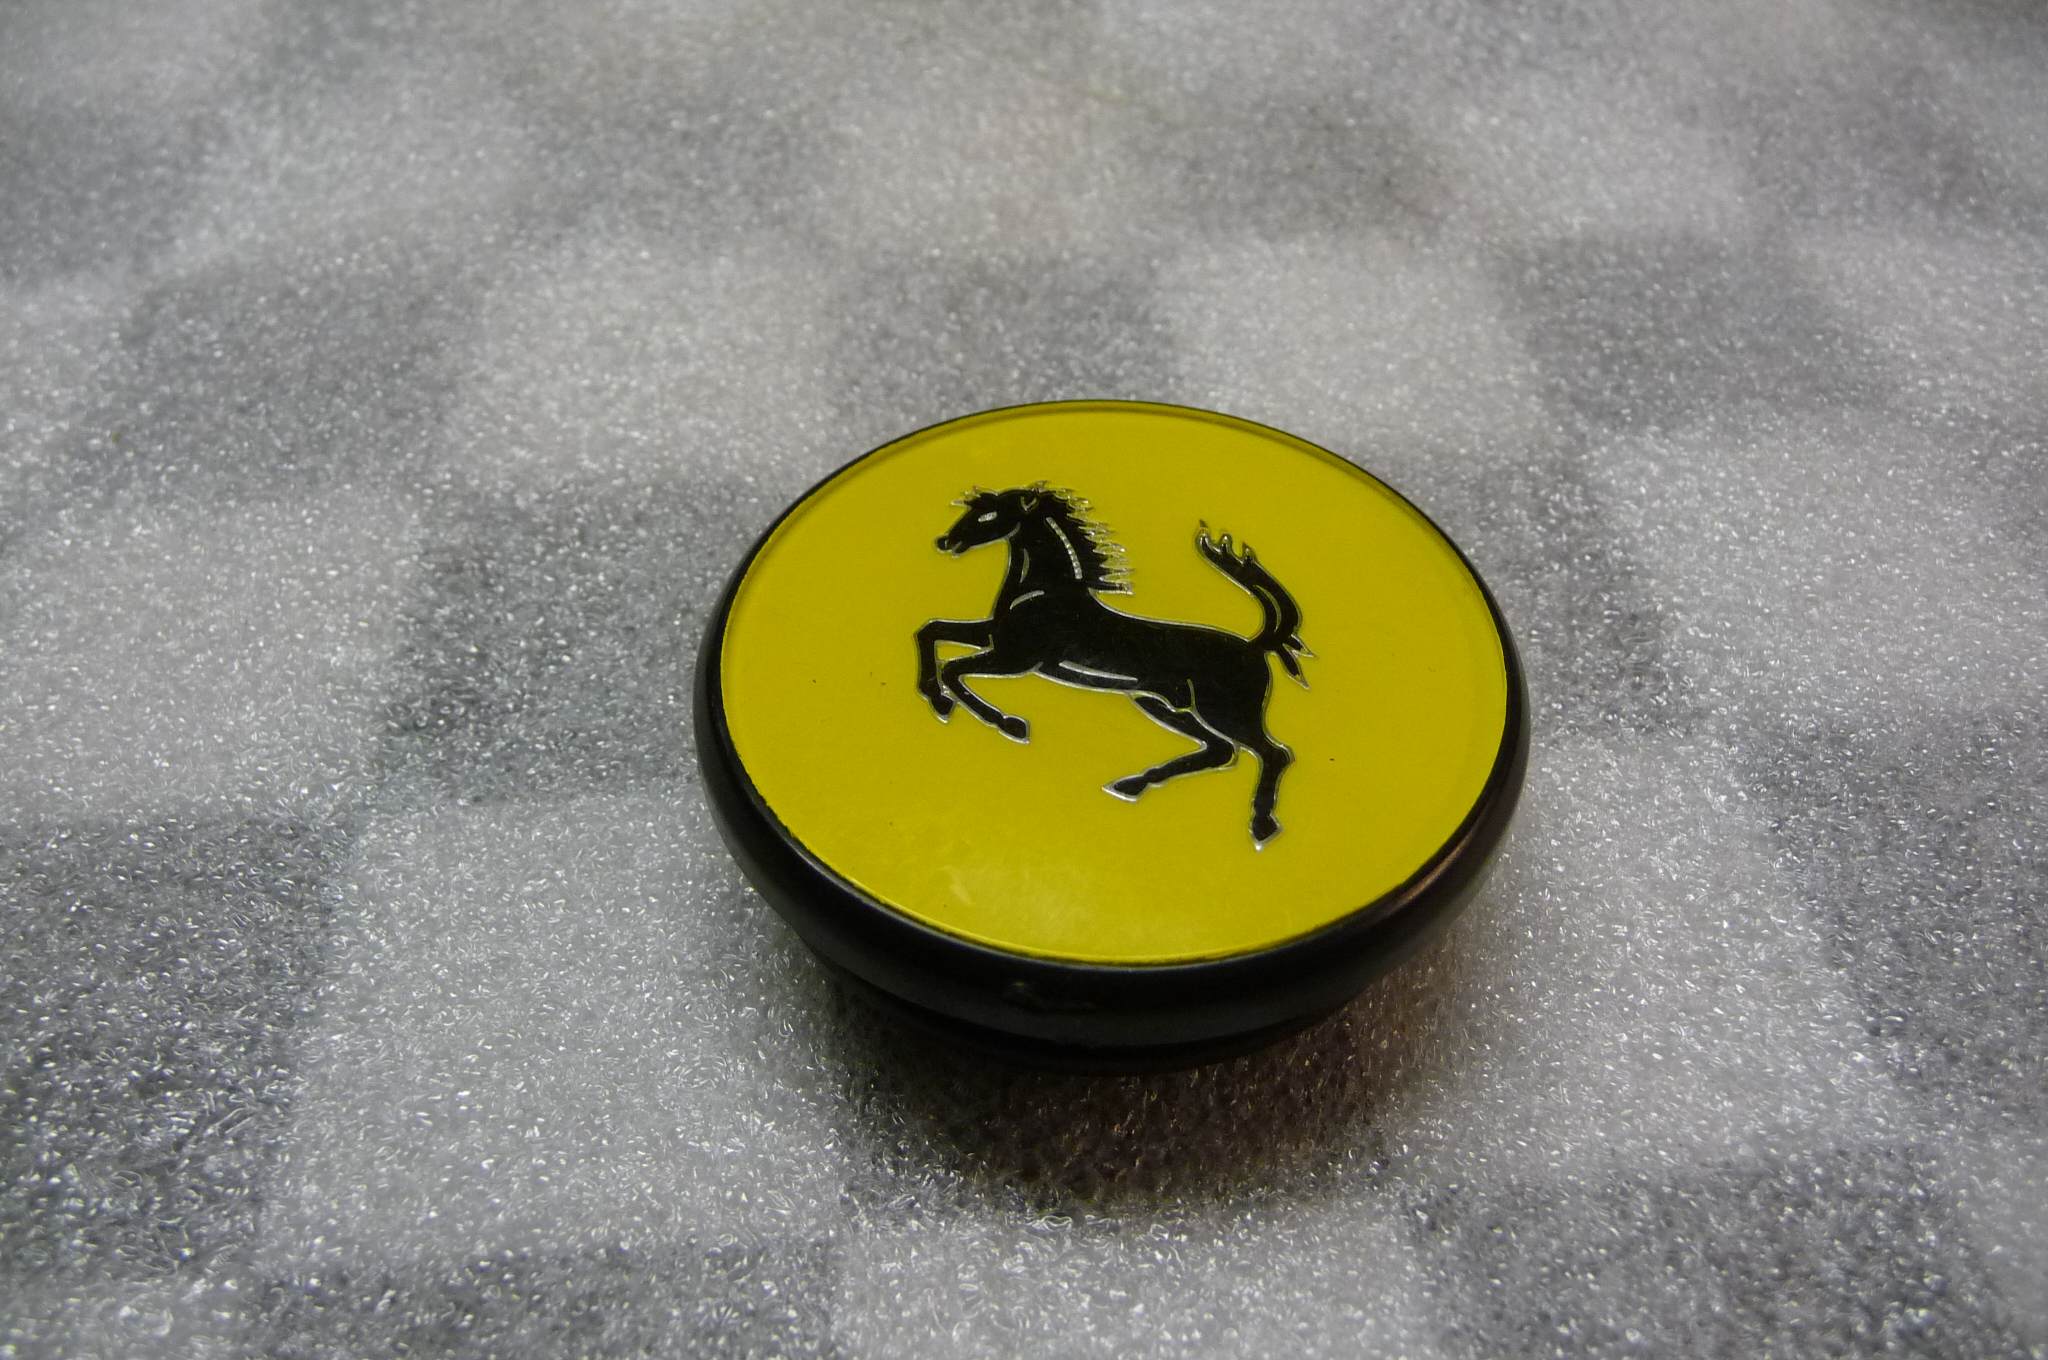 Ferrari Old Style Original First Edition Wheel Cap P# 108947 - Used Auto Parts Store | LA Global Parts